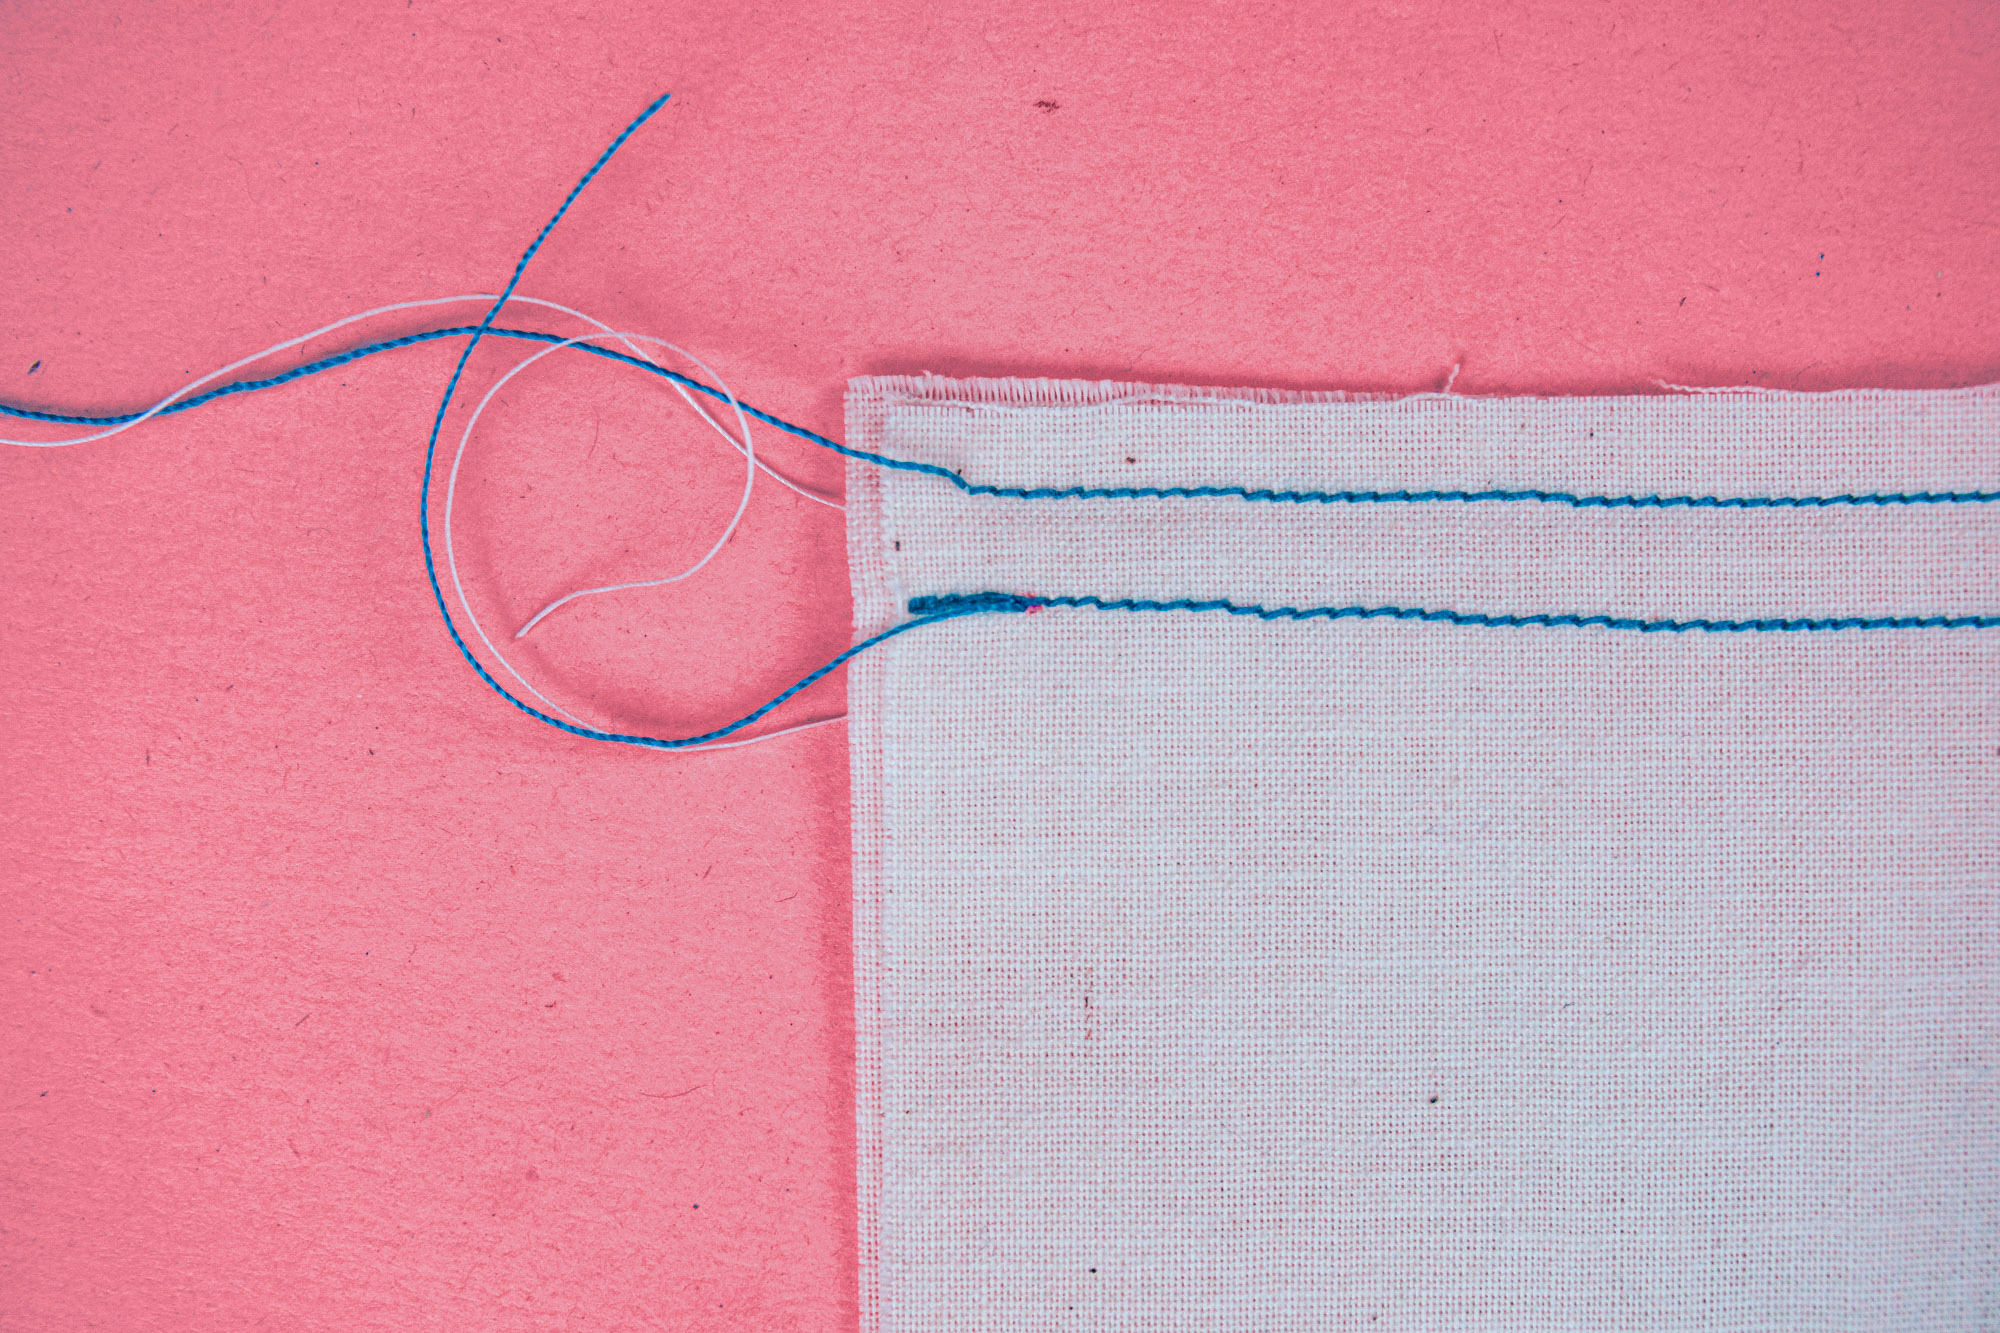 A backstitch in shown on white fabric.